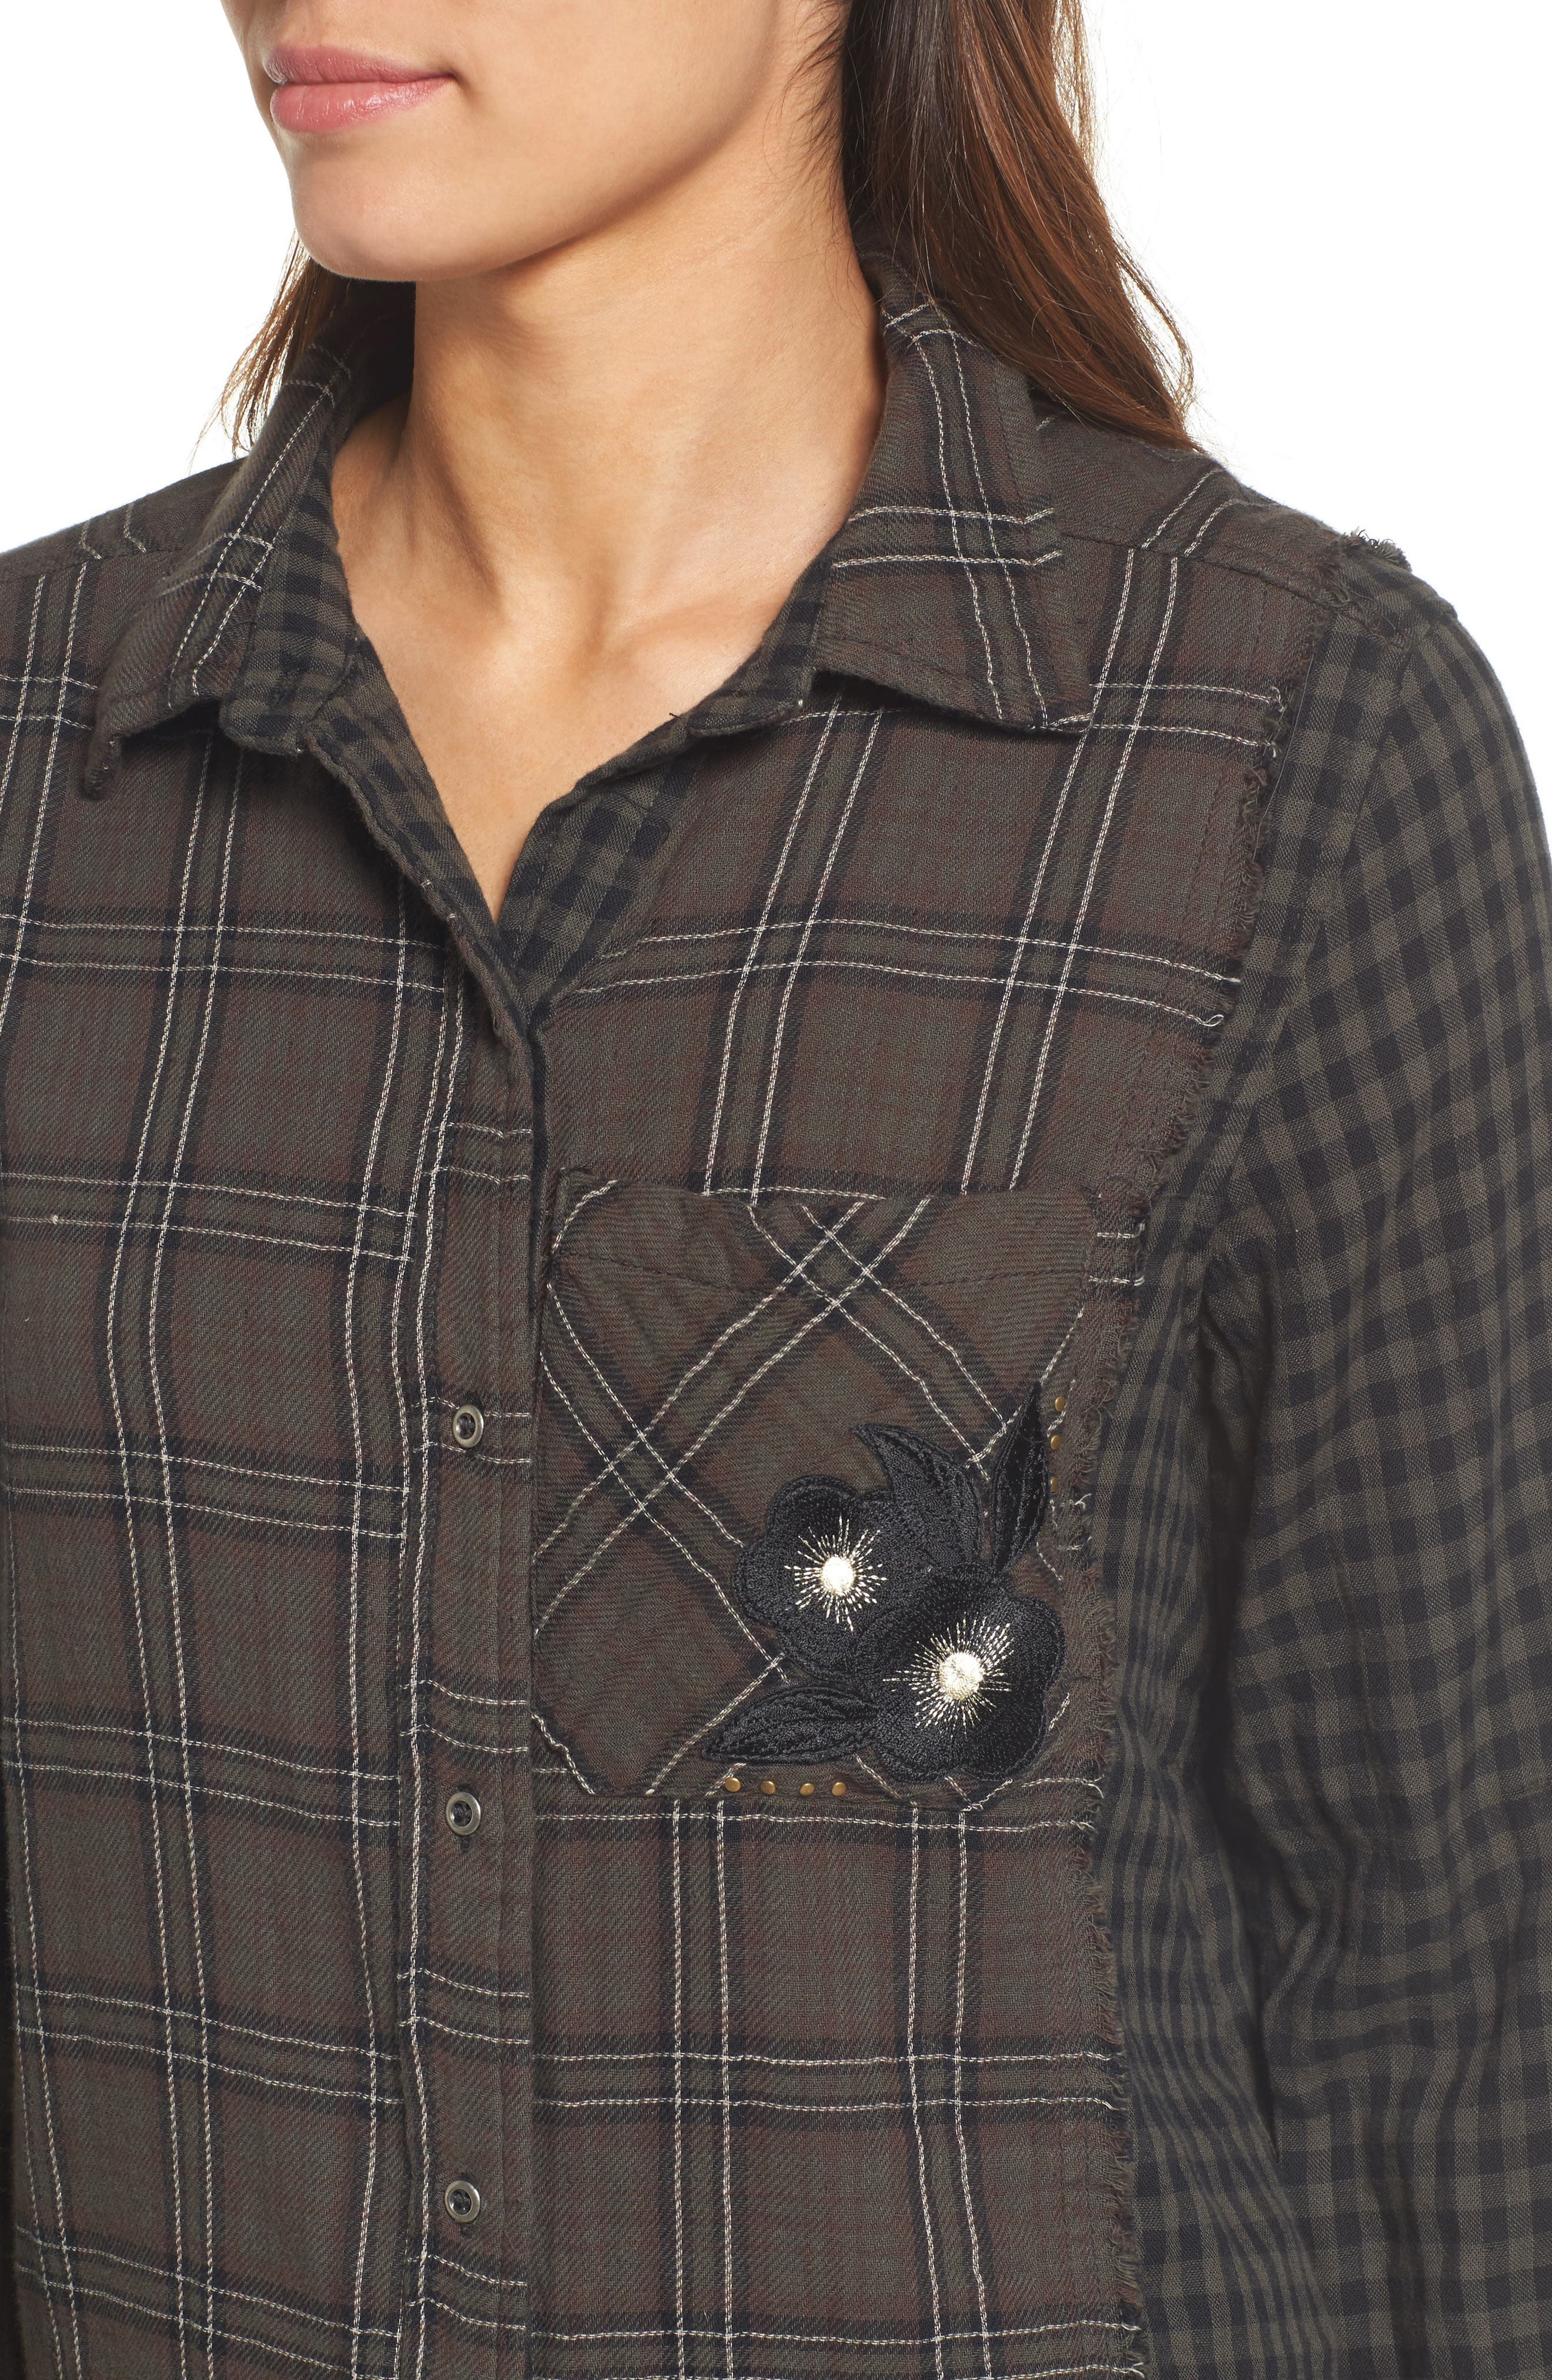 Contrast Sleeve Button-Down Top,                             Alternate thumbnail 4, color,